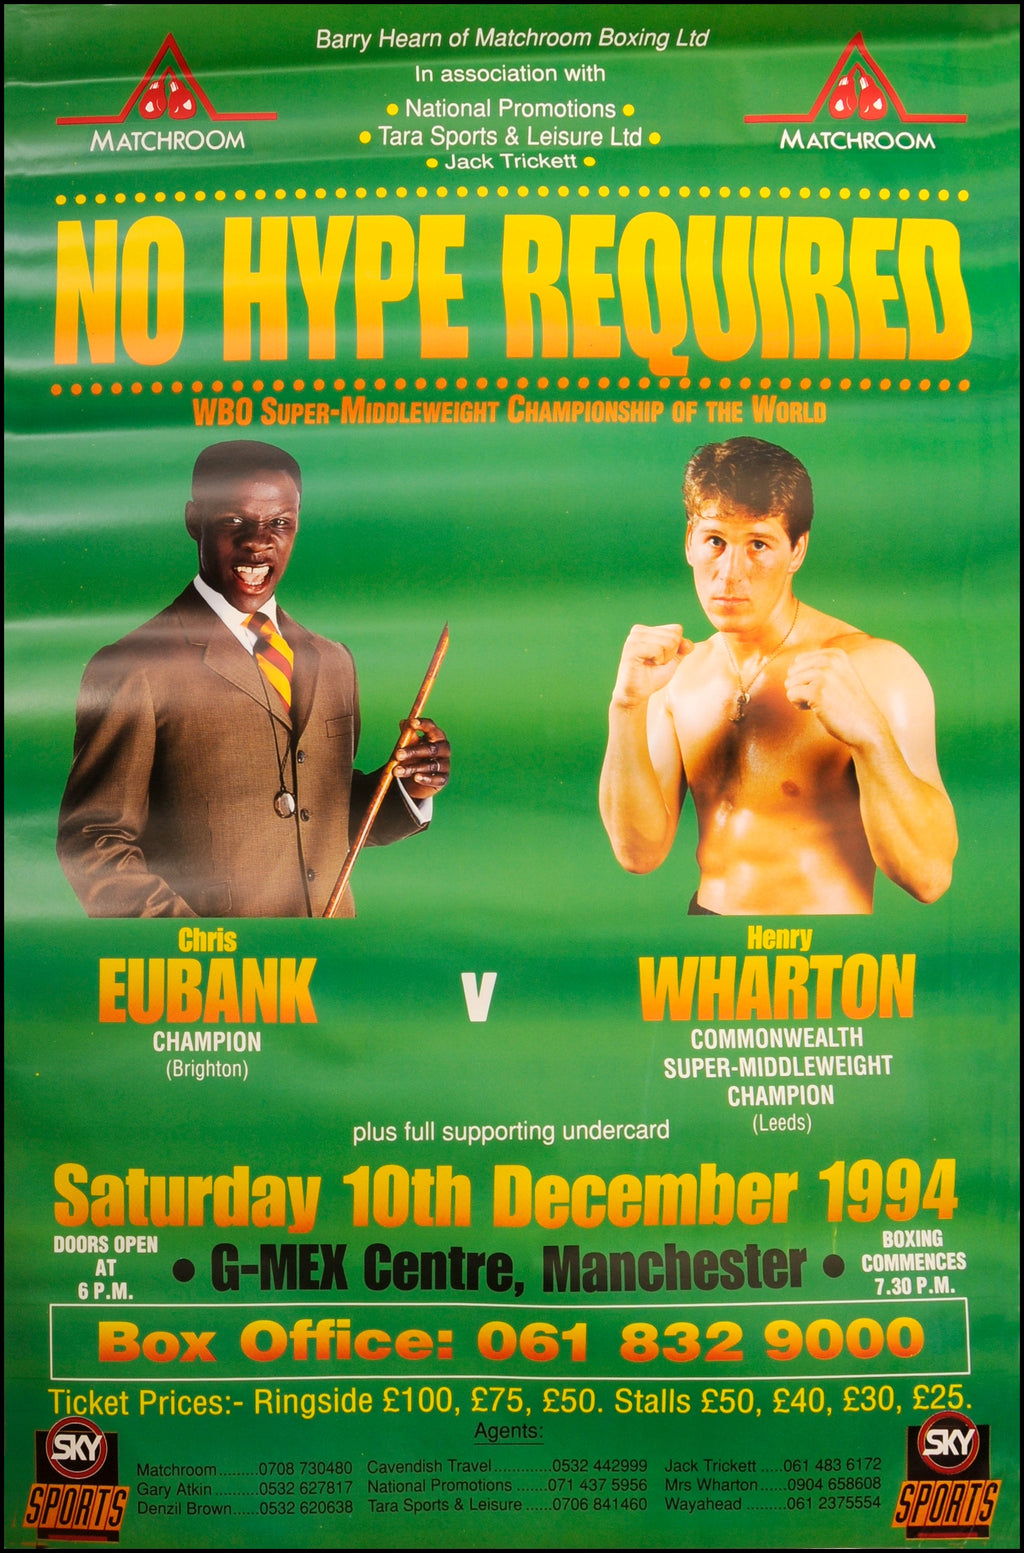 Chris Eubank poster - No Hype Required